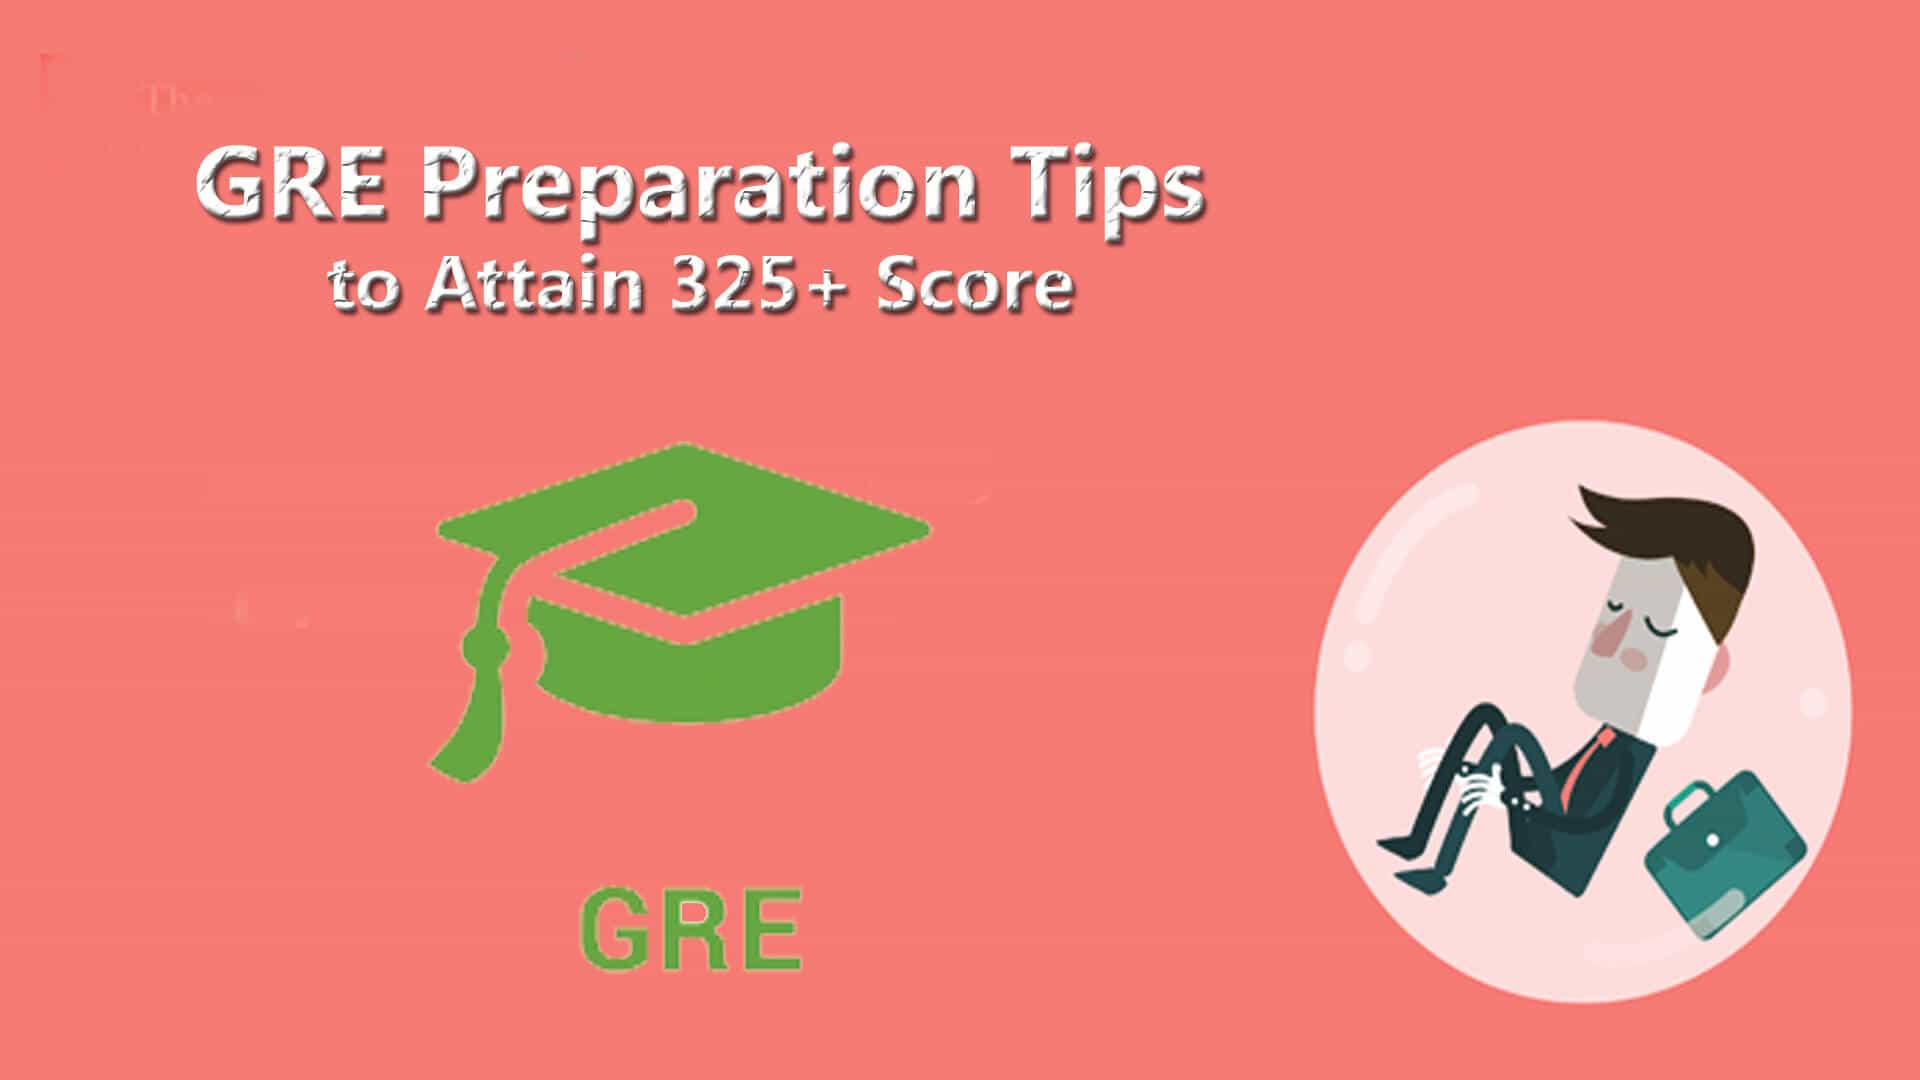 GRE-reparation-Tips.jpg